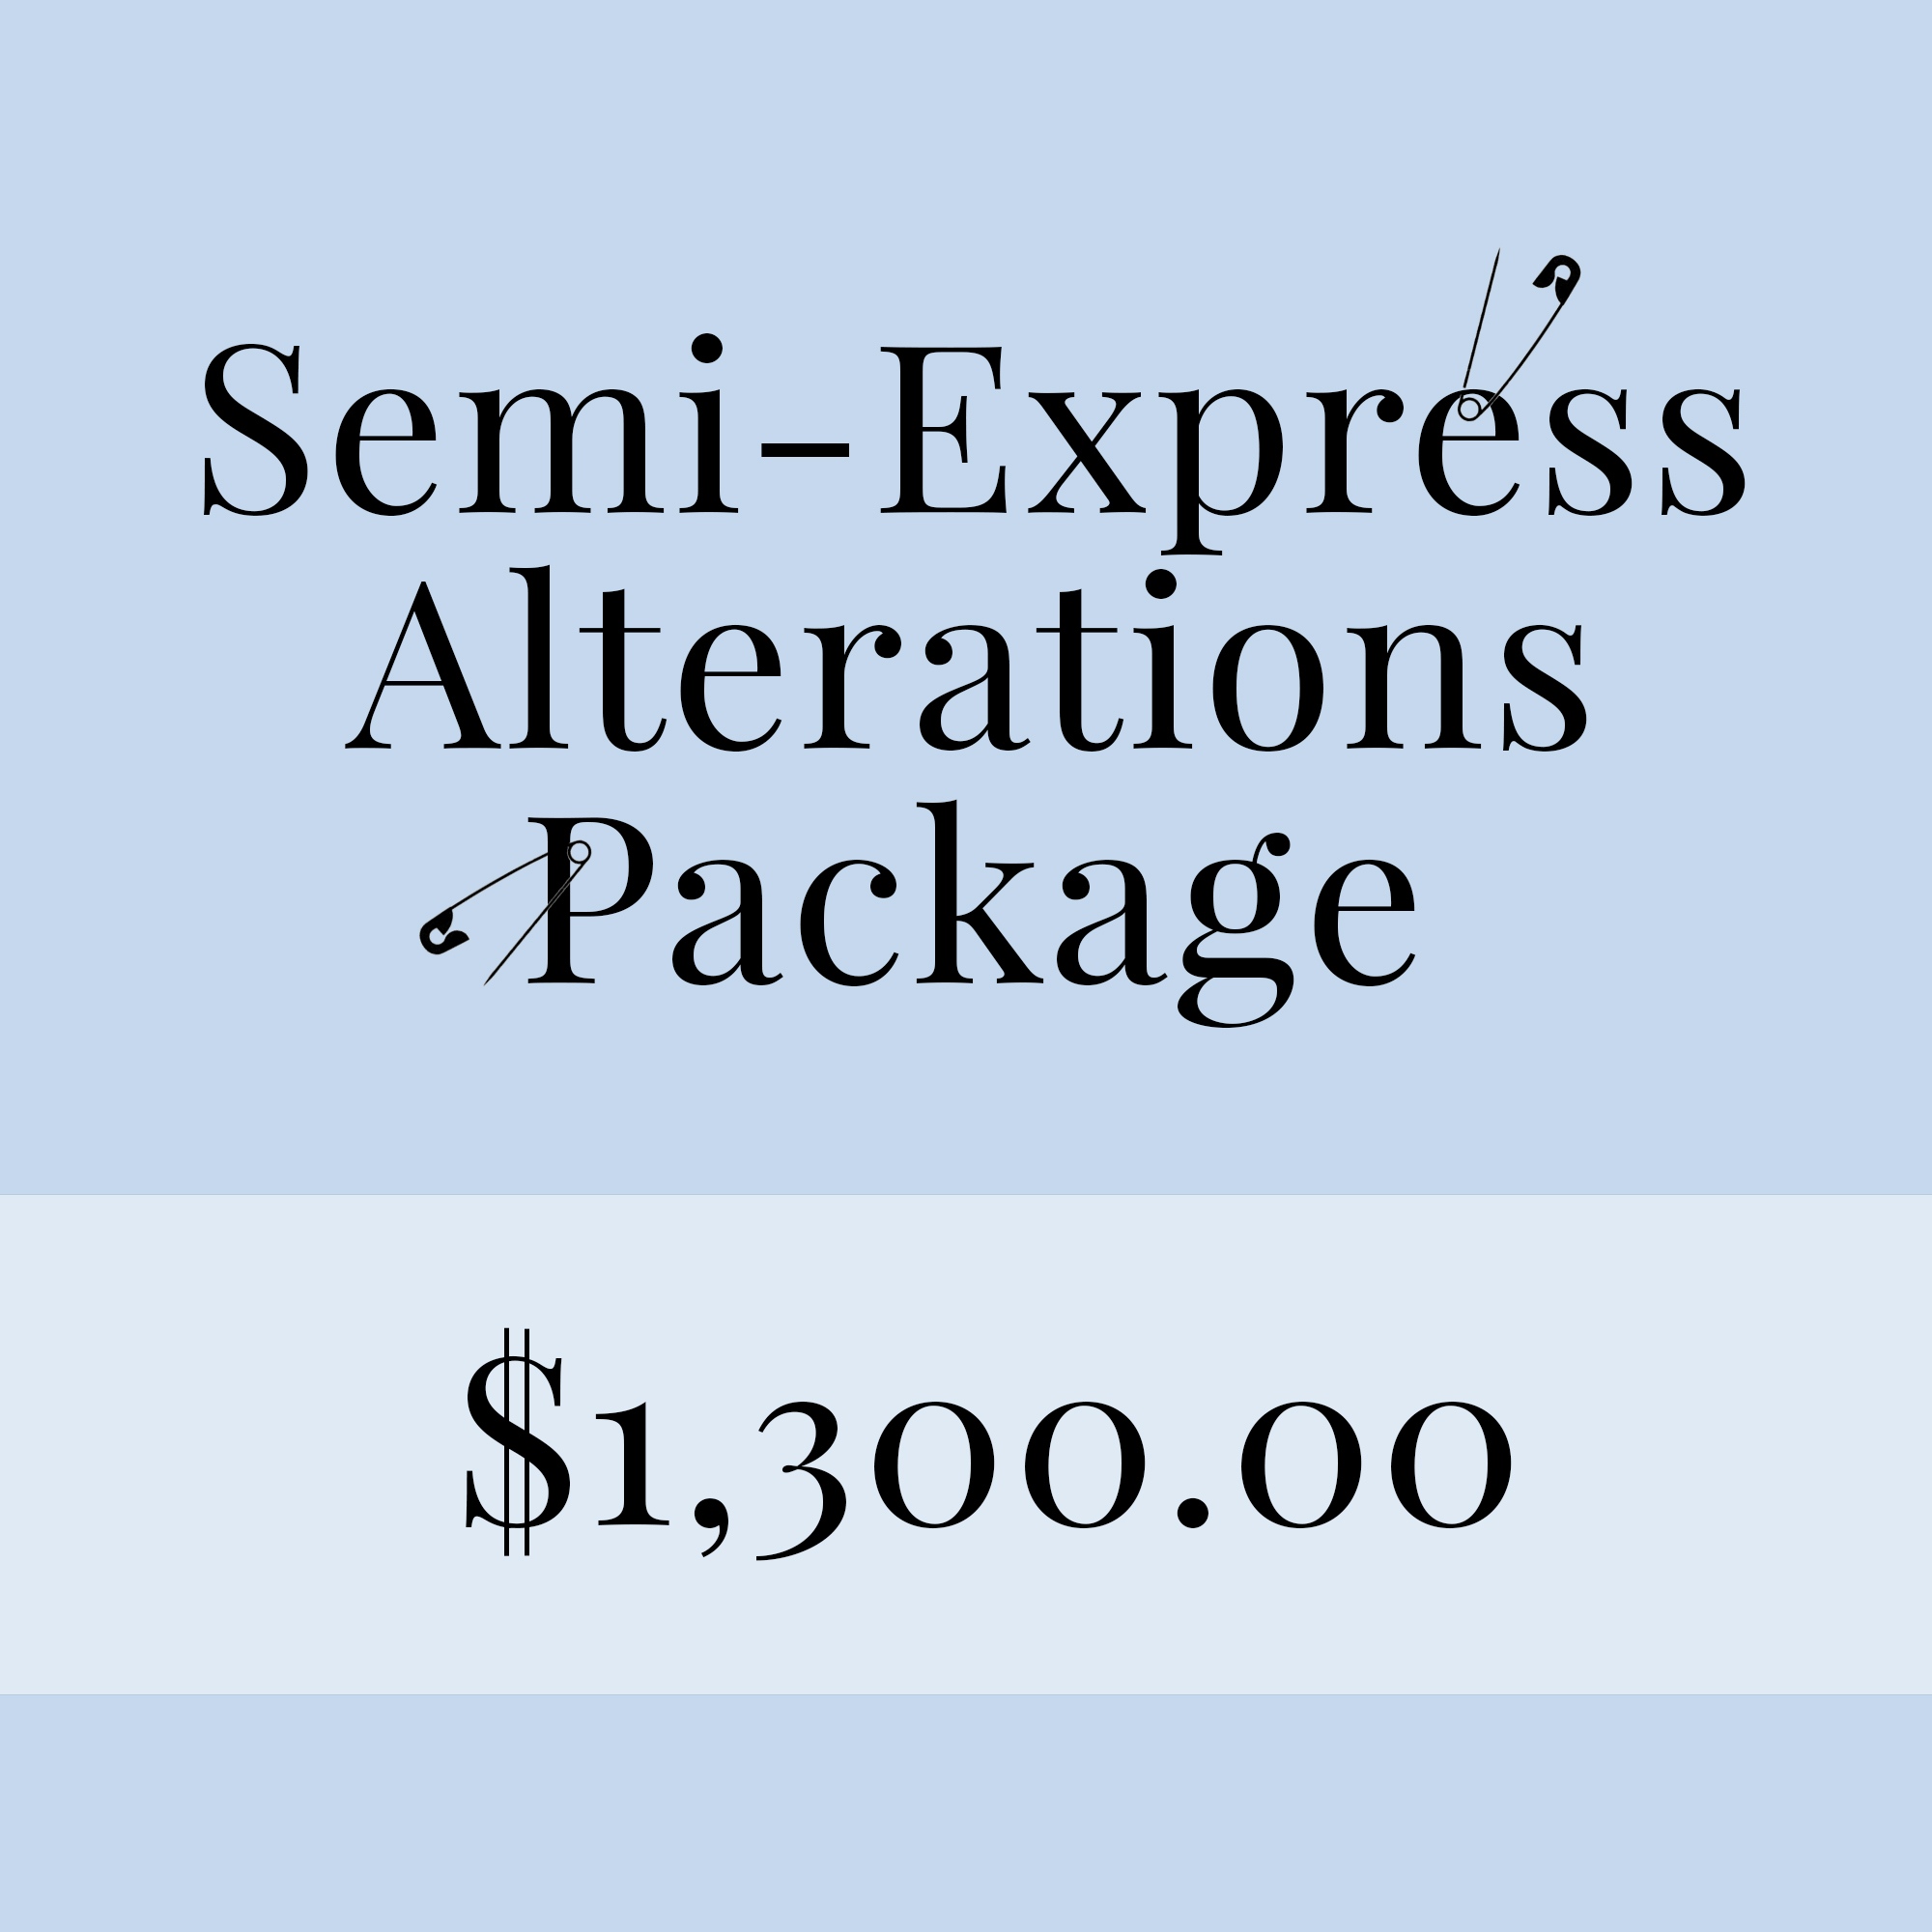 semi-express alternations package